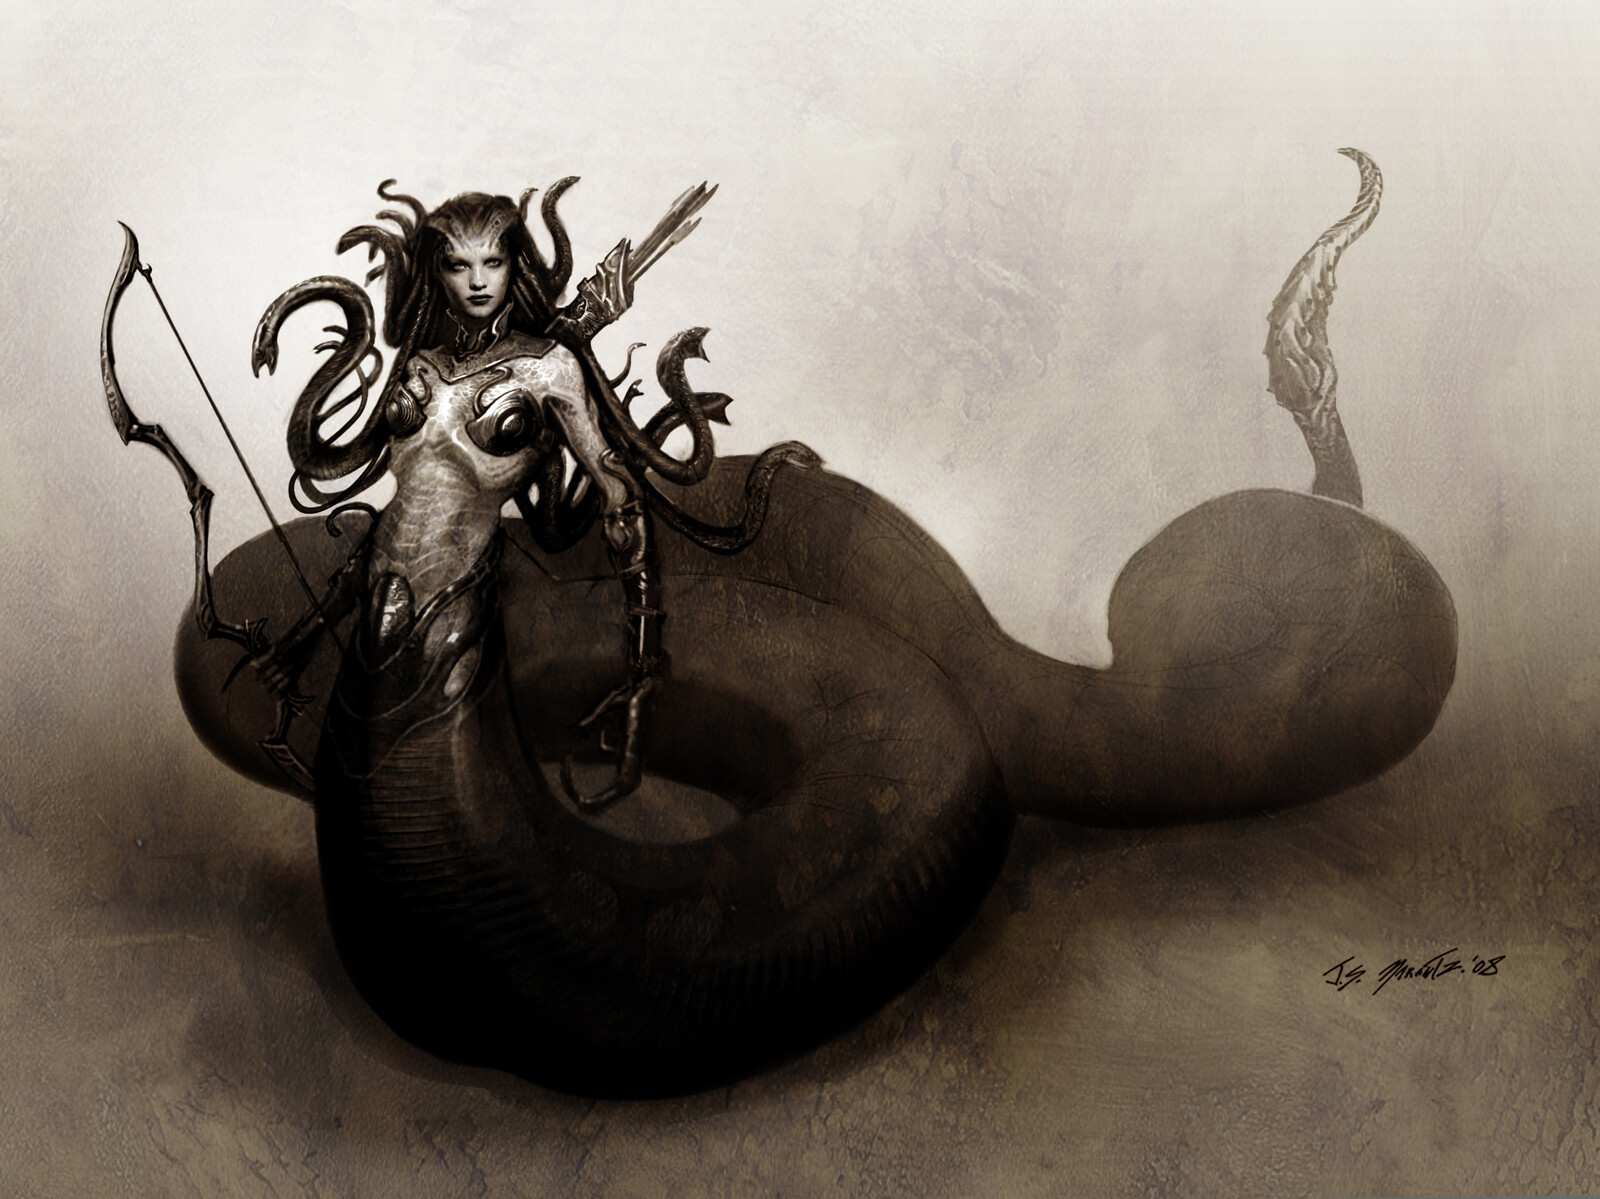 Medusa Designs for Clash of the Titans